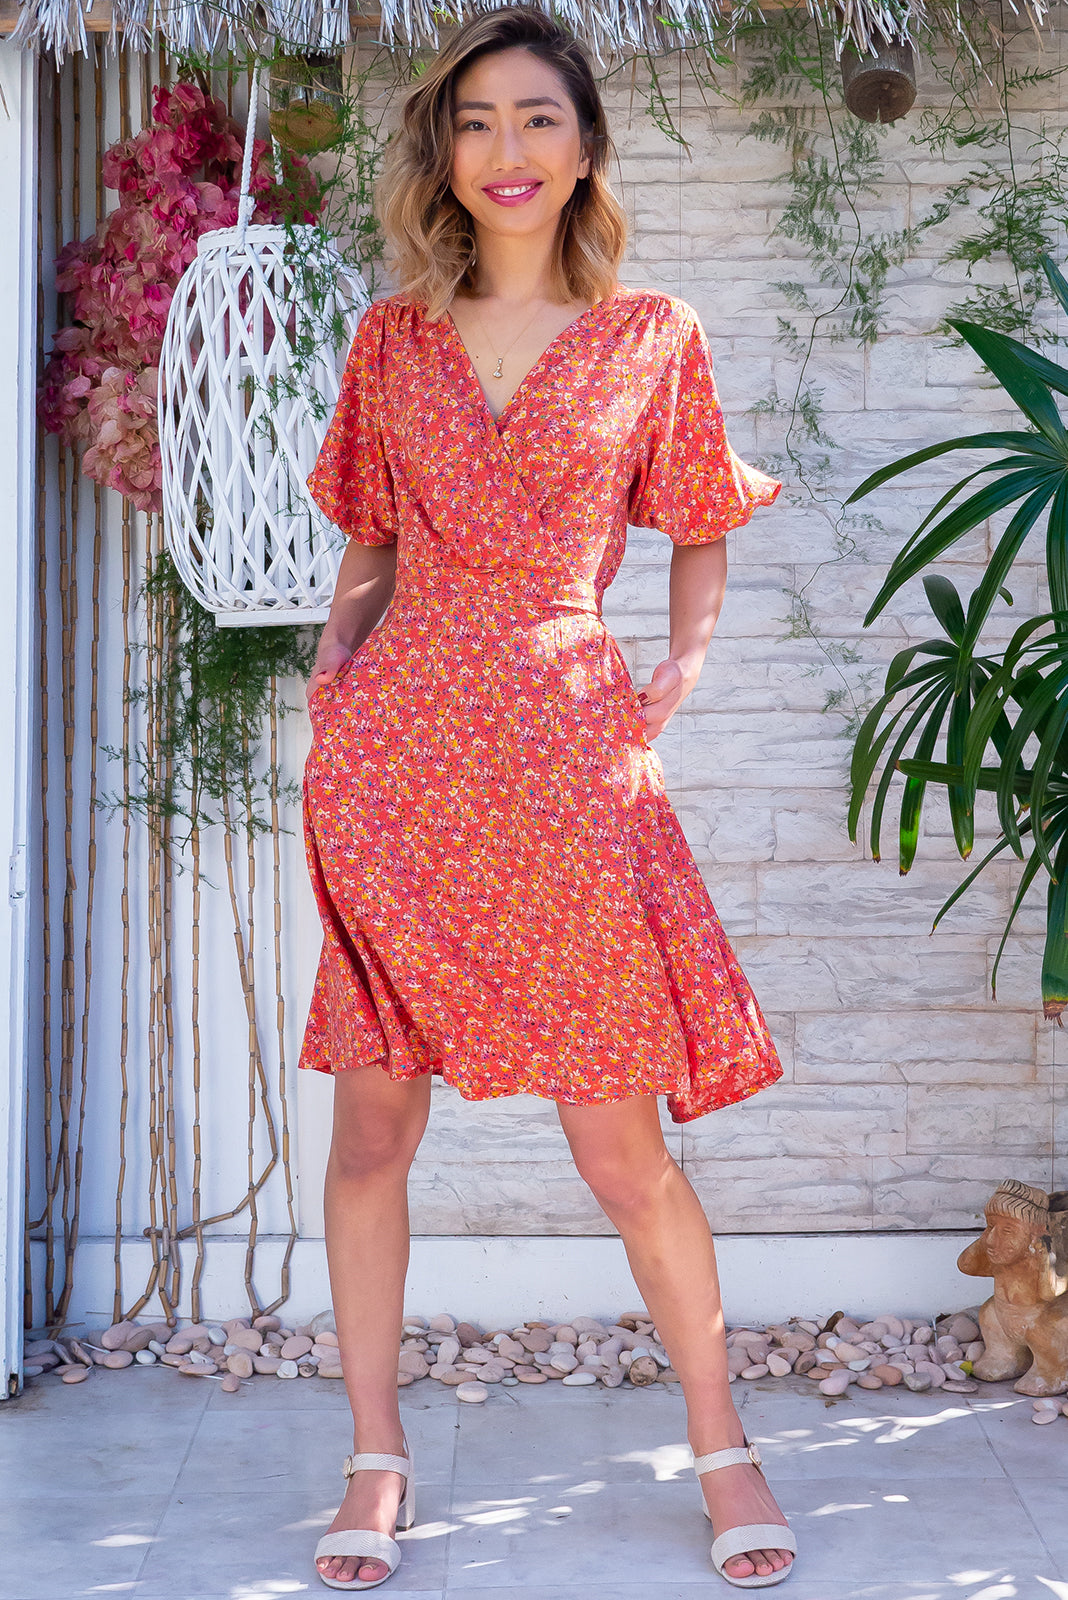 The Poppi Tuscan Orange Wrap Dress features flattering adjustable wrap design, elasticated waist band at the back, puff sleeves, side pockets and 100% rayon in terracotta base with ditzy print.